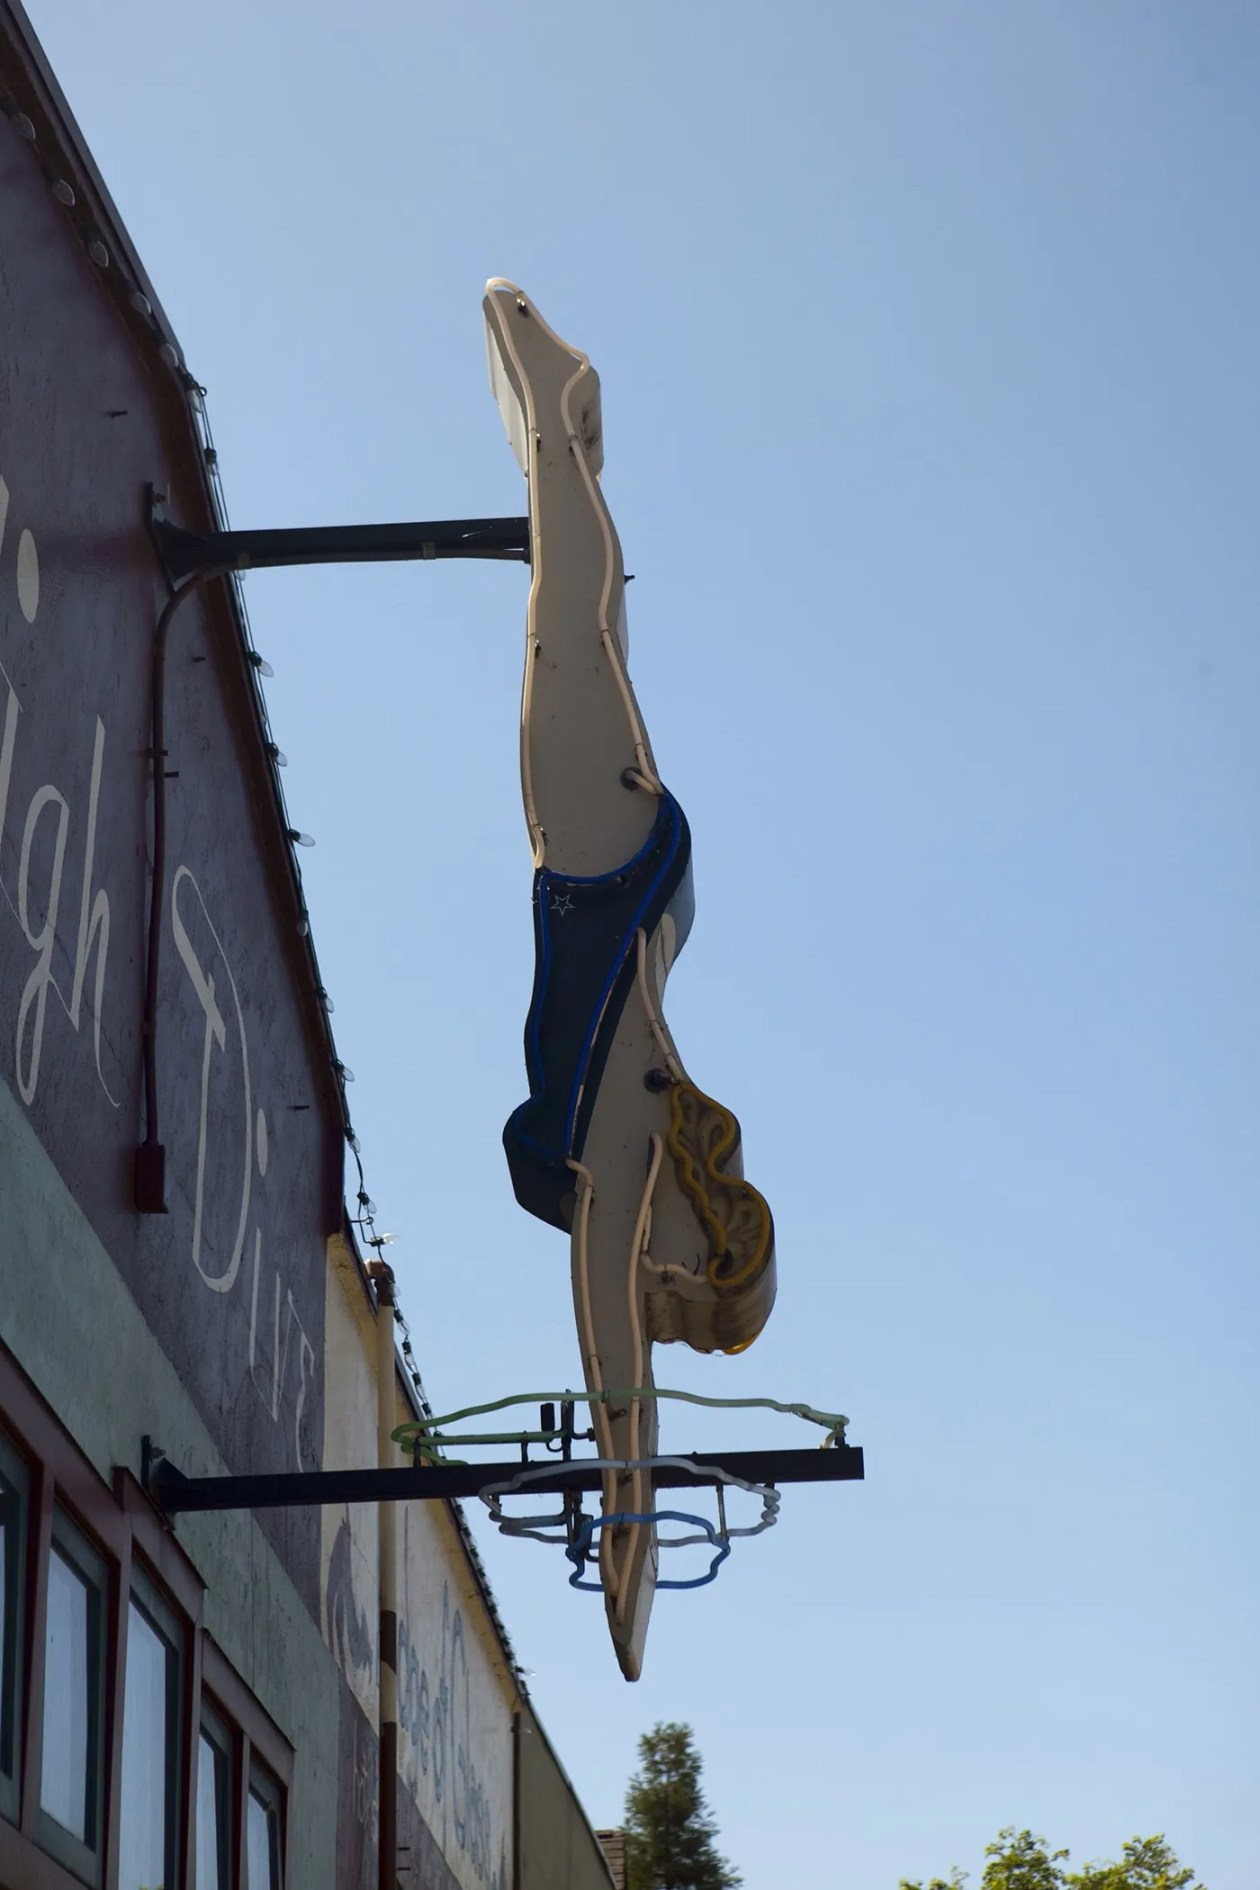 Fremont High Dive sign in the Fremont neighborhood of Seattle, Washington.